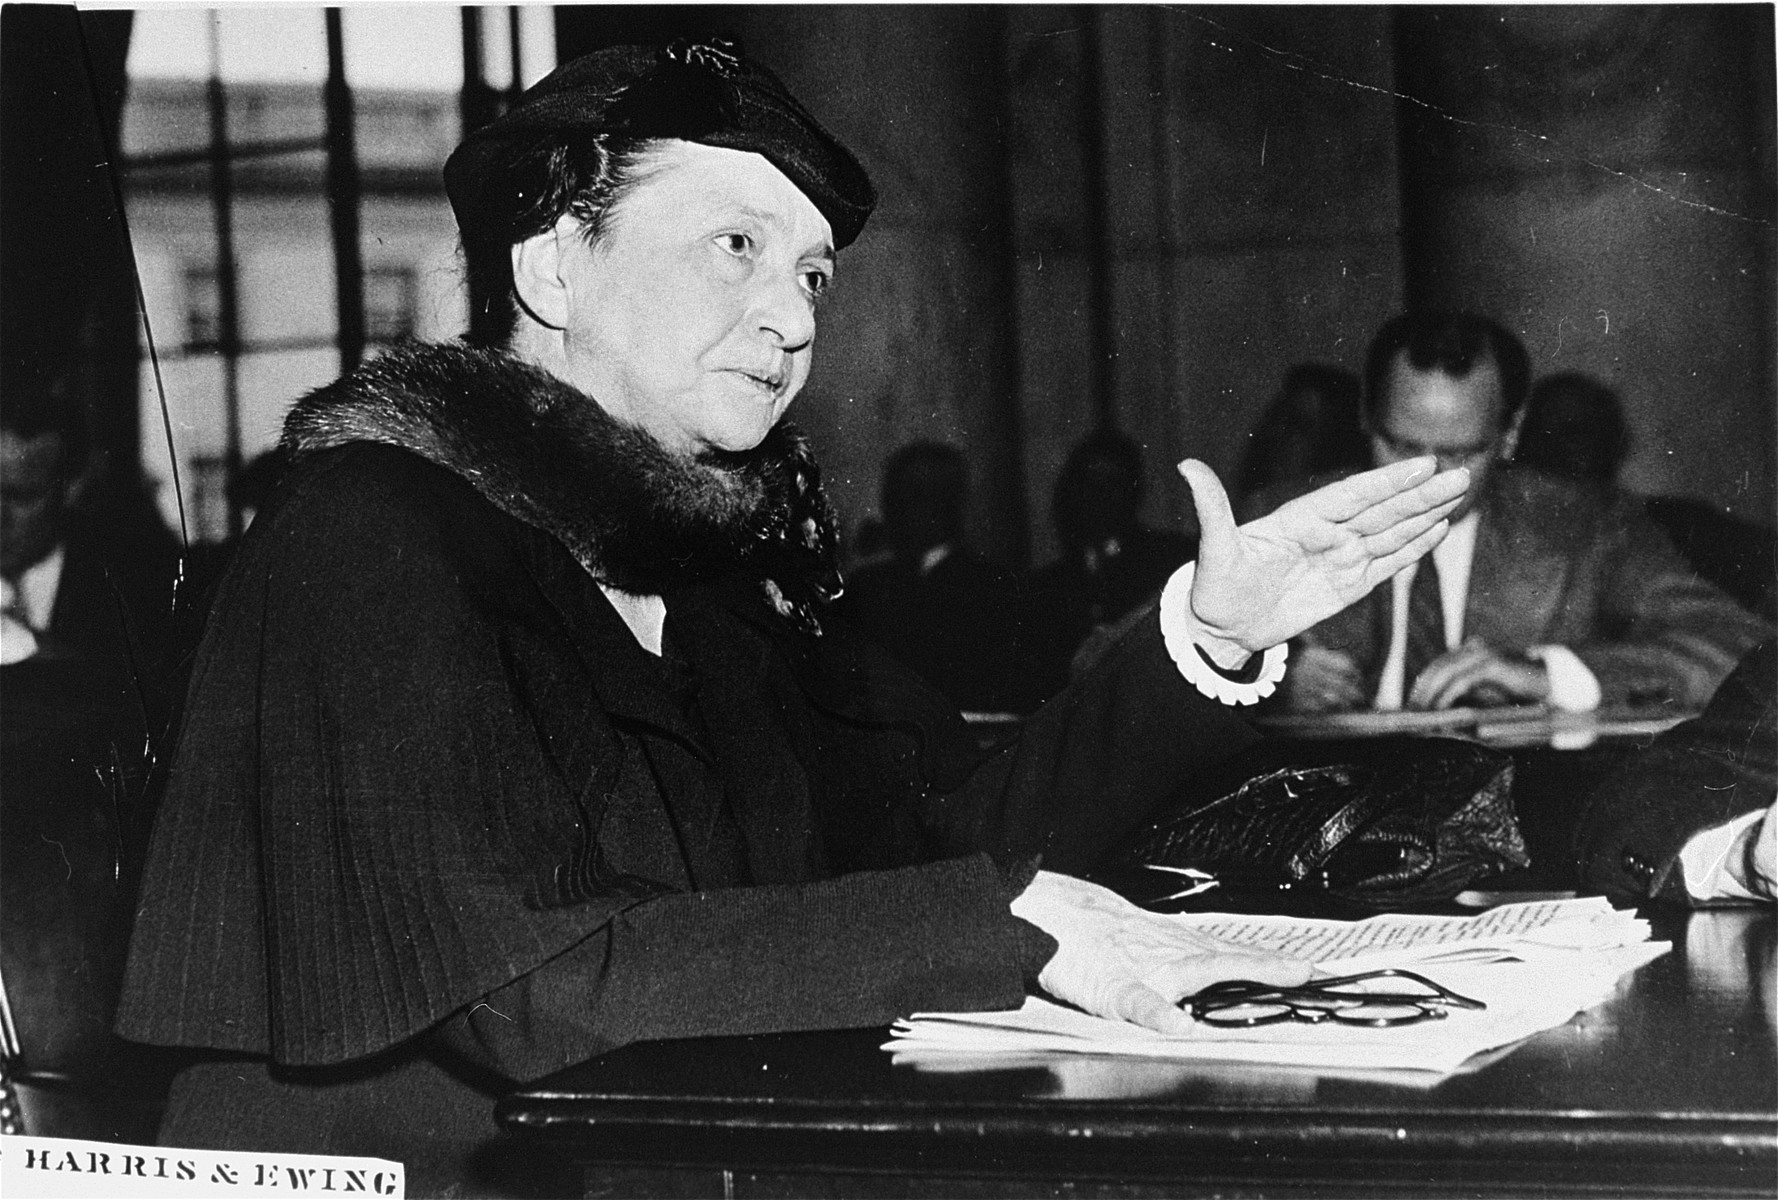 Portrait of Secretary of Labor Frances Perkins testifying before a Senate committee hearing on low income housing subsidies.